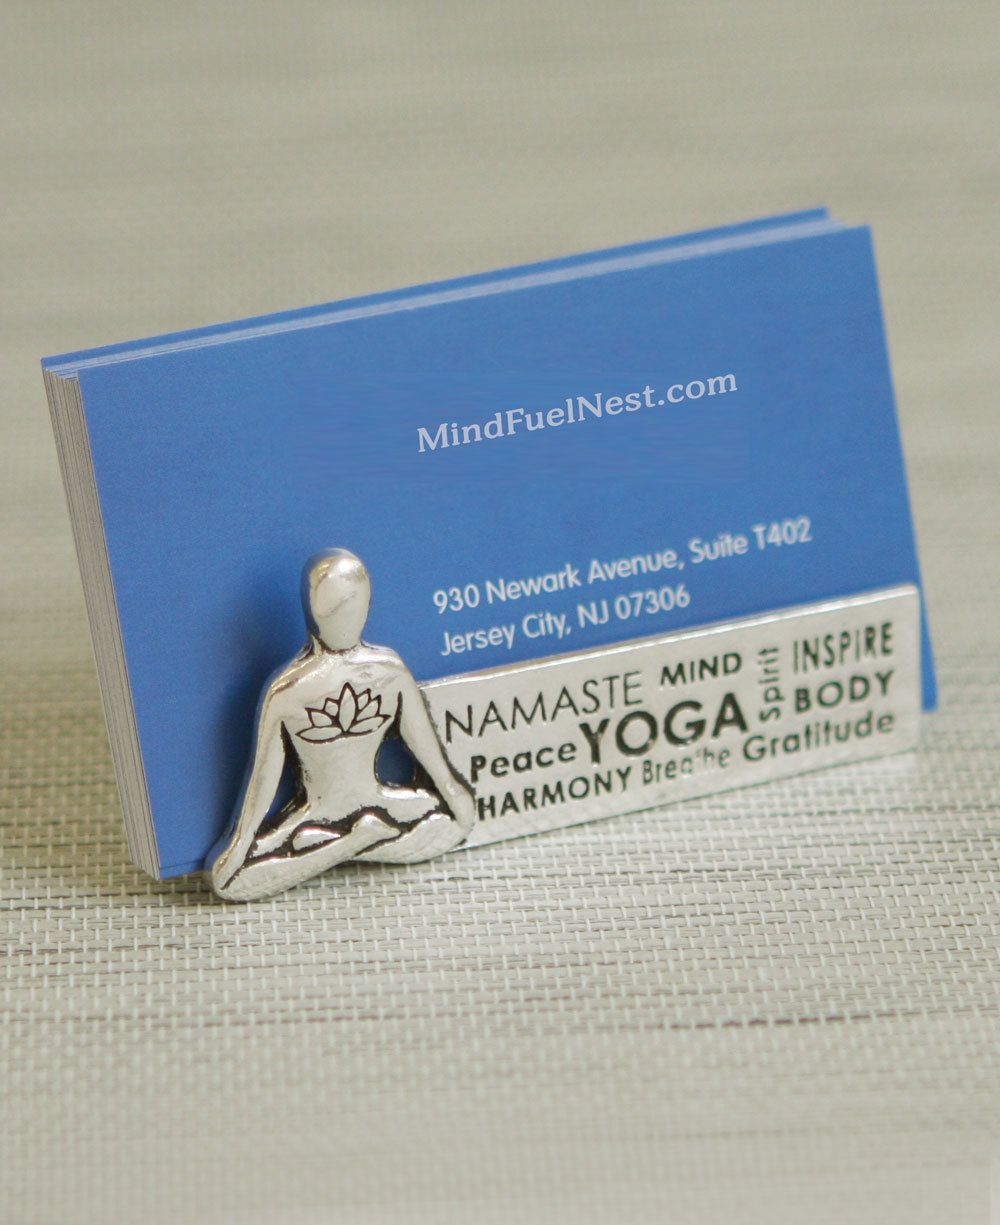 Yoga figure business card holder stamped pewter business card yoga figure business card holder find personalized business cards in pretty patterns at mouseandmarkerbusiness cards reheart